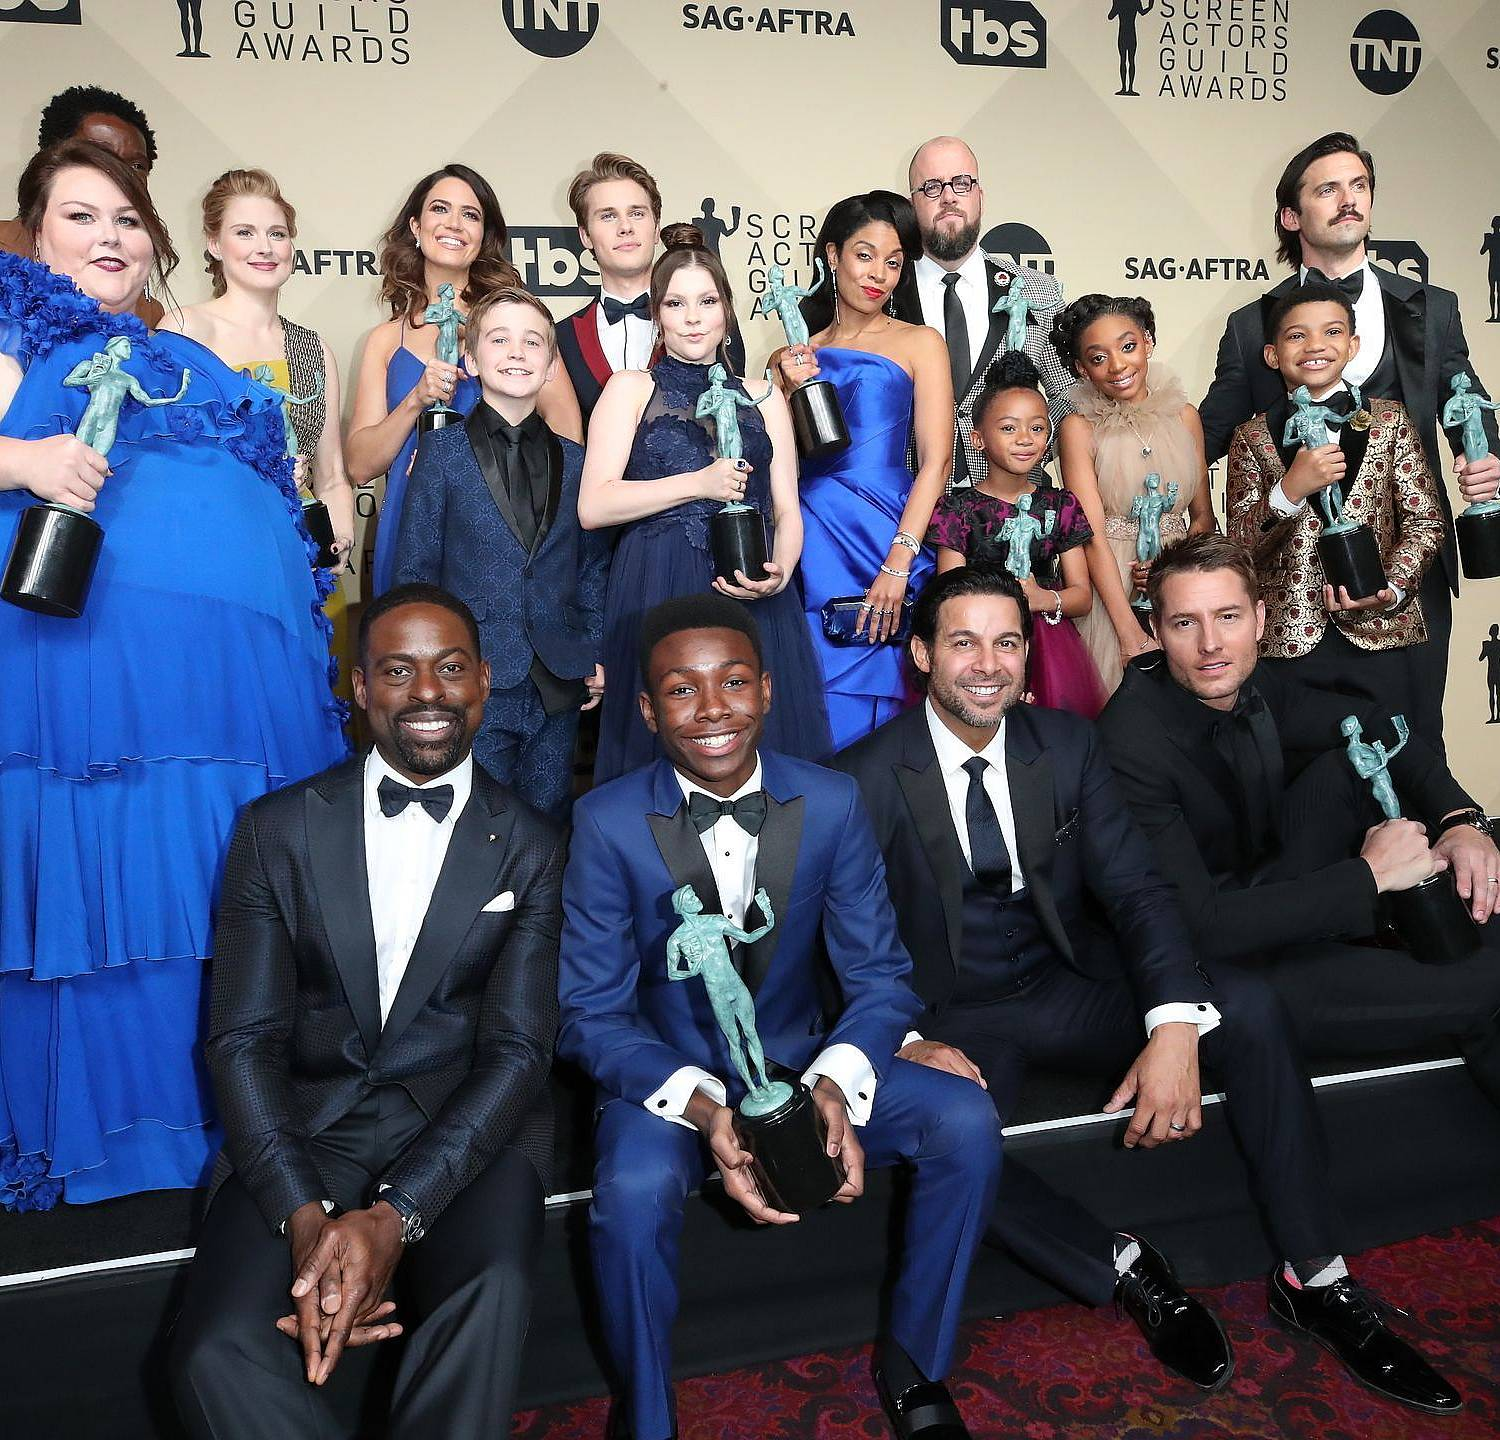 """Cast of """"This Is Us"""" after receiving award for Outstanding Performance by an Ensemble in a Drama Series. Credit:Dan MacMedan/USA TODAY"""